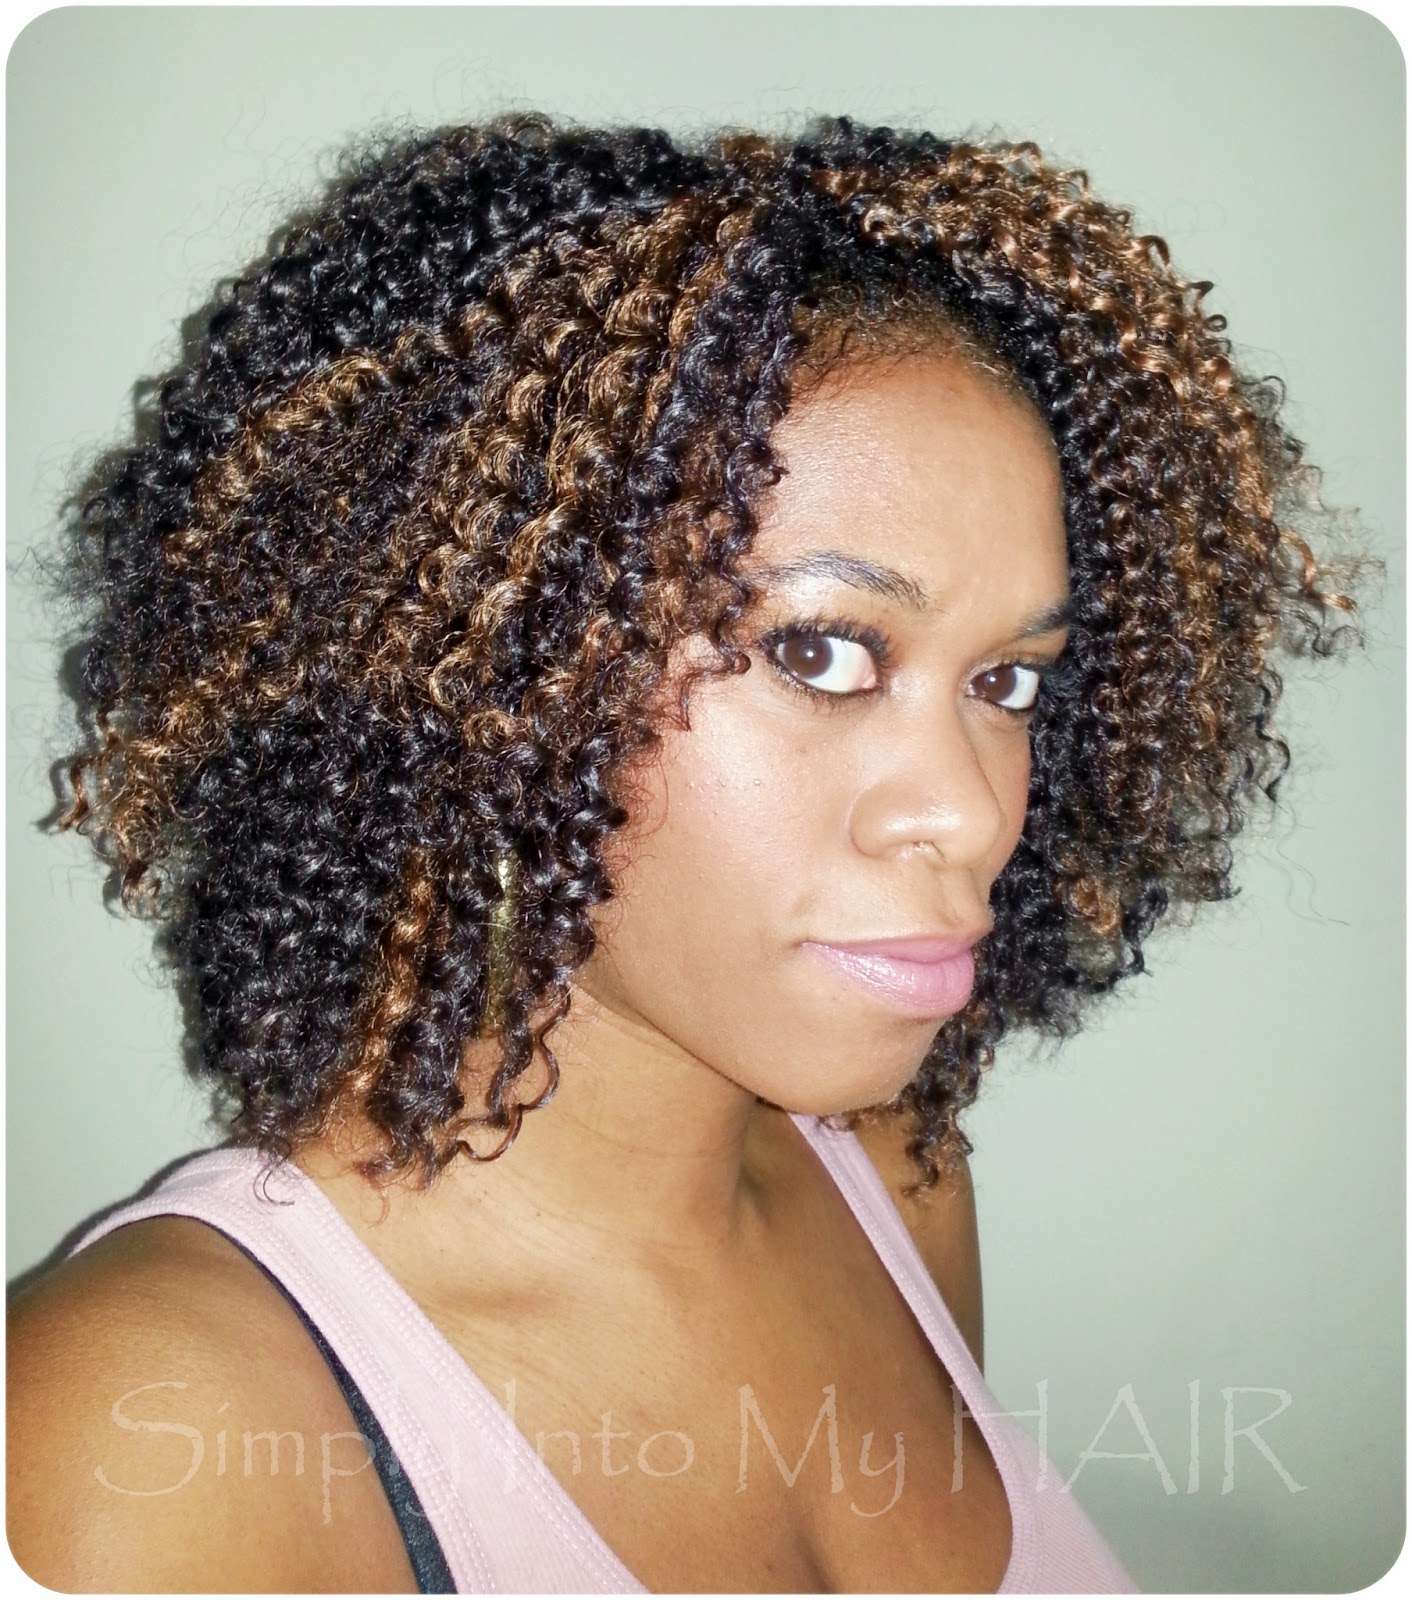 Crochet Straight Hair : Crochet Braids Straight Hair I opted for braiding my hair